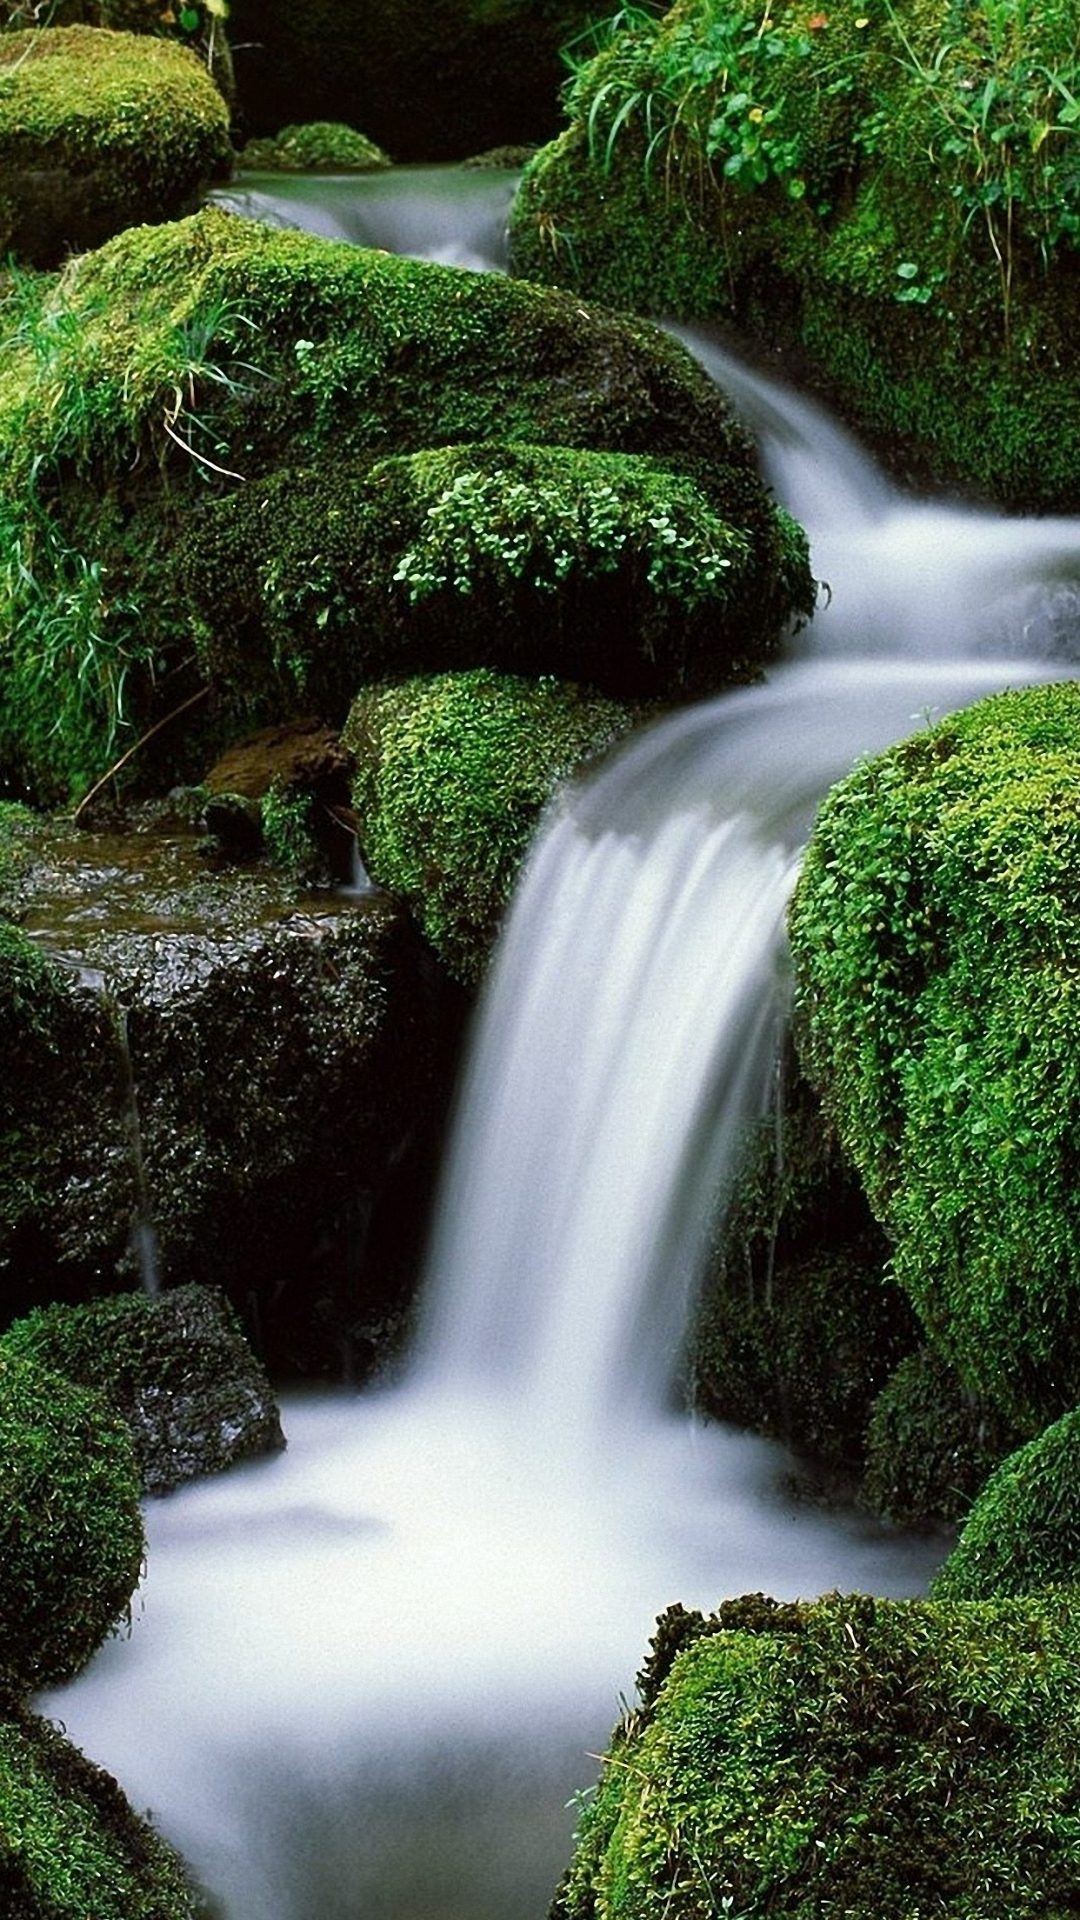 Waterfall Green Forest Iphone 6 Wallpapers Hd - Waterfall Gif , HD Wallpaper & Backgrounds